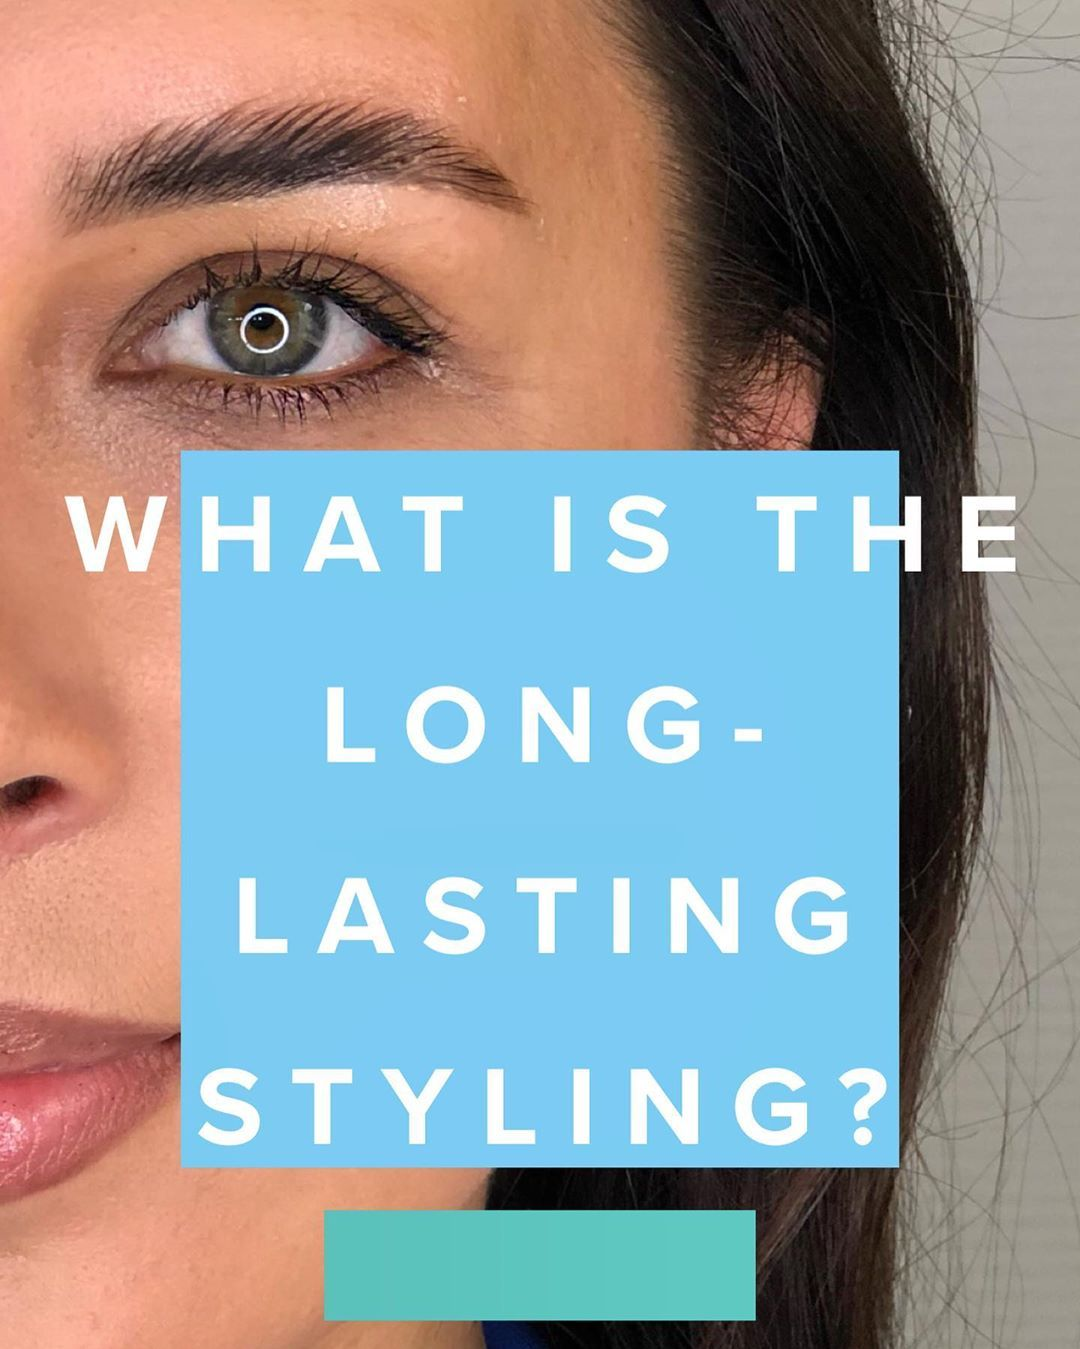 Long Lasting Styling Eyebrow Lift Eyebrow Lamination Different Name The Same Procedure But What Is That Keeps Eyebrow Lift Eyebrows Permanent Makeup